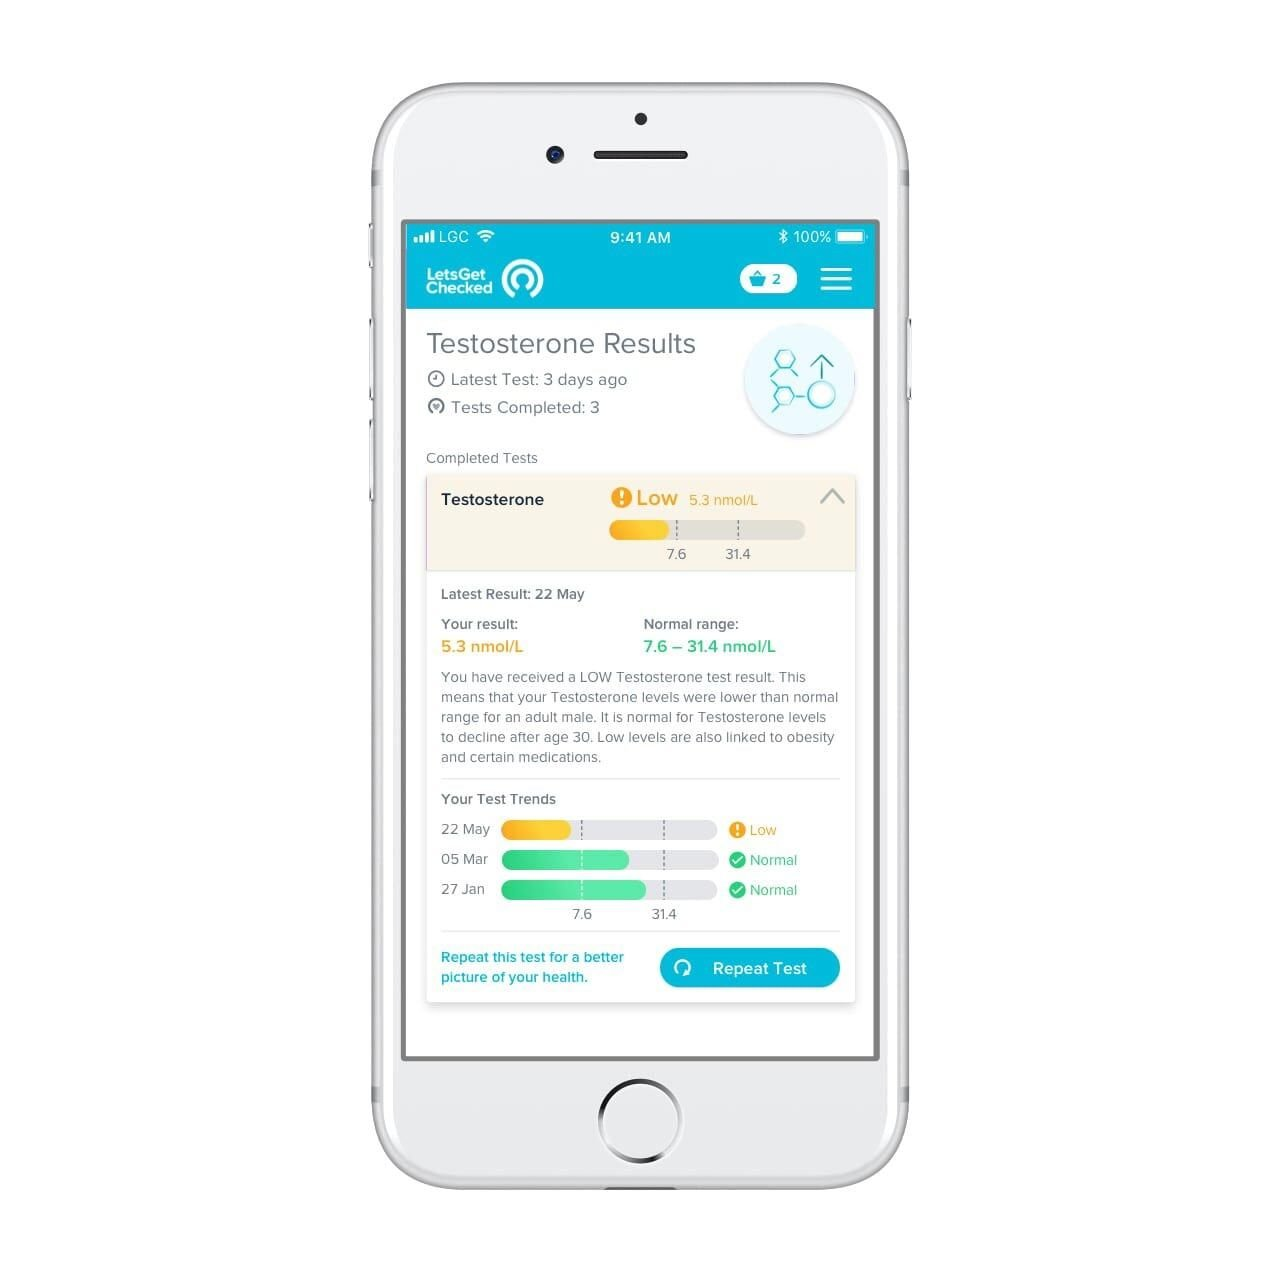 LetsGetChecked- at Home Progesterone Ovulation Test by LetsGetChecked (Image #3)